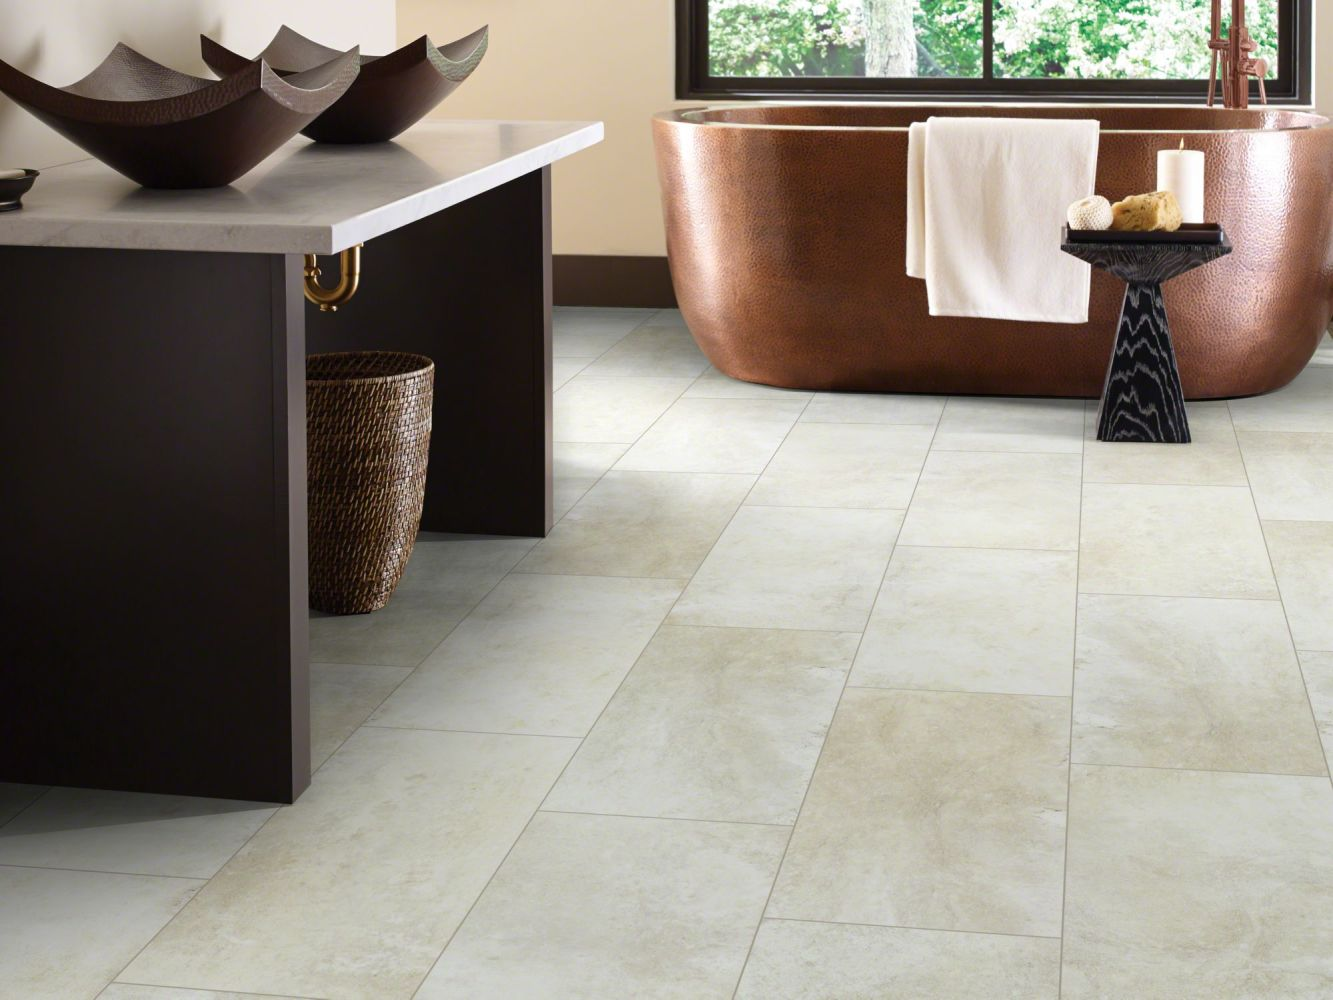 Shaw Floors Resilient Residential Paragon Tile Plus Shale 00281_1022V